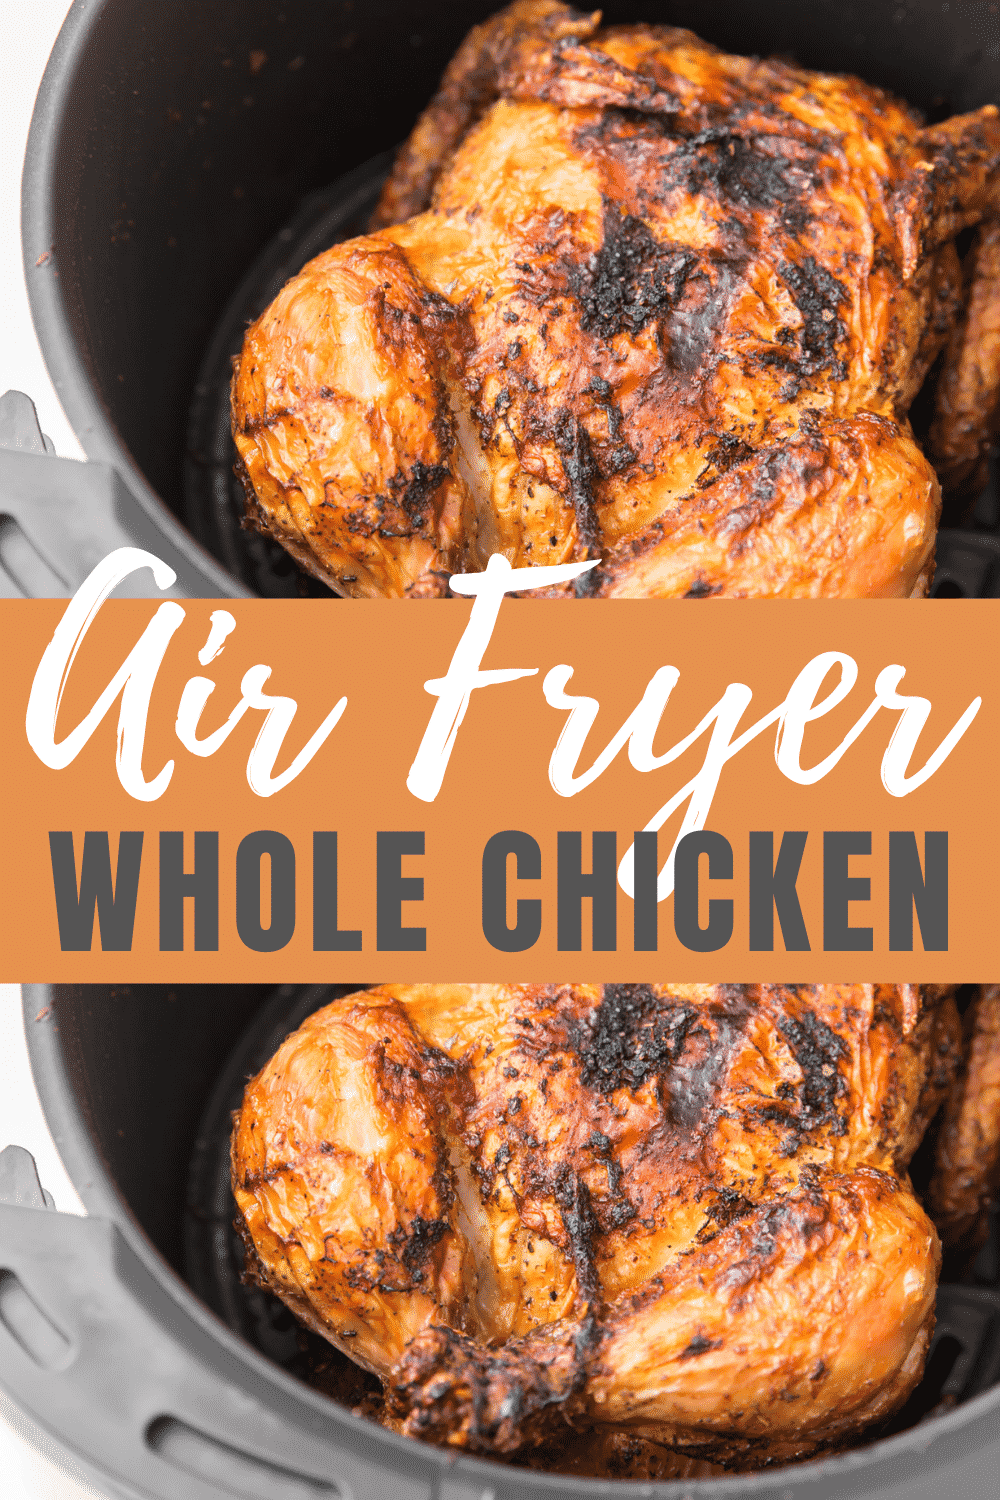 This Air Fryer Whole Chicken recipe makes the most succulent roasted chicken in less than an hour! Skip the rotisserie chicken and make this at home with a few simple spices. #airfryerwholechicken #airfryerchicken via @vegetarianmamma